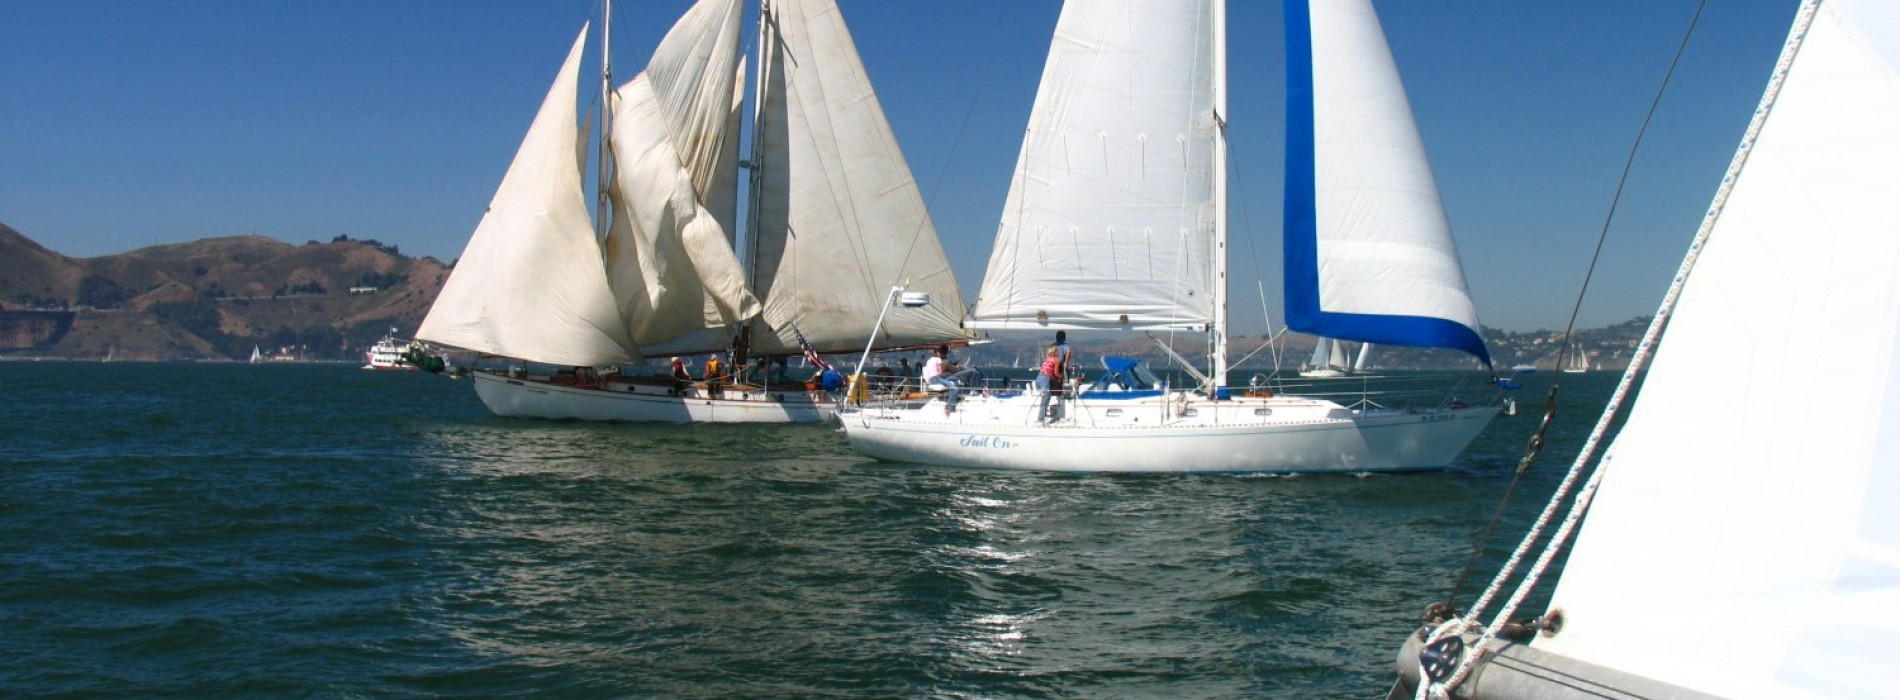 Paralympic Games 2012: the freedom of sailing